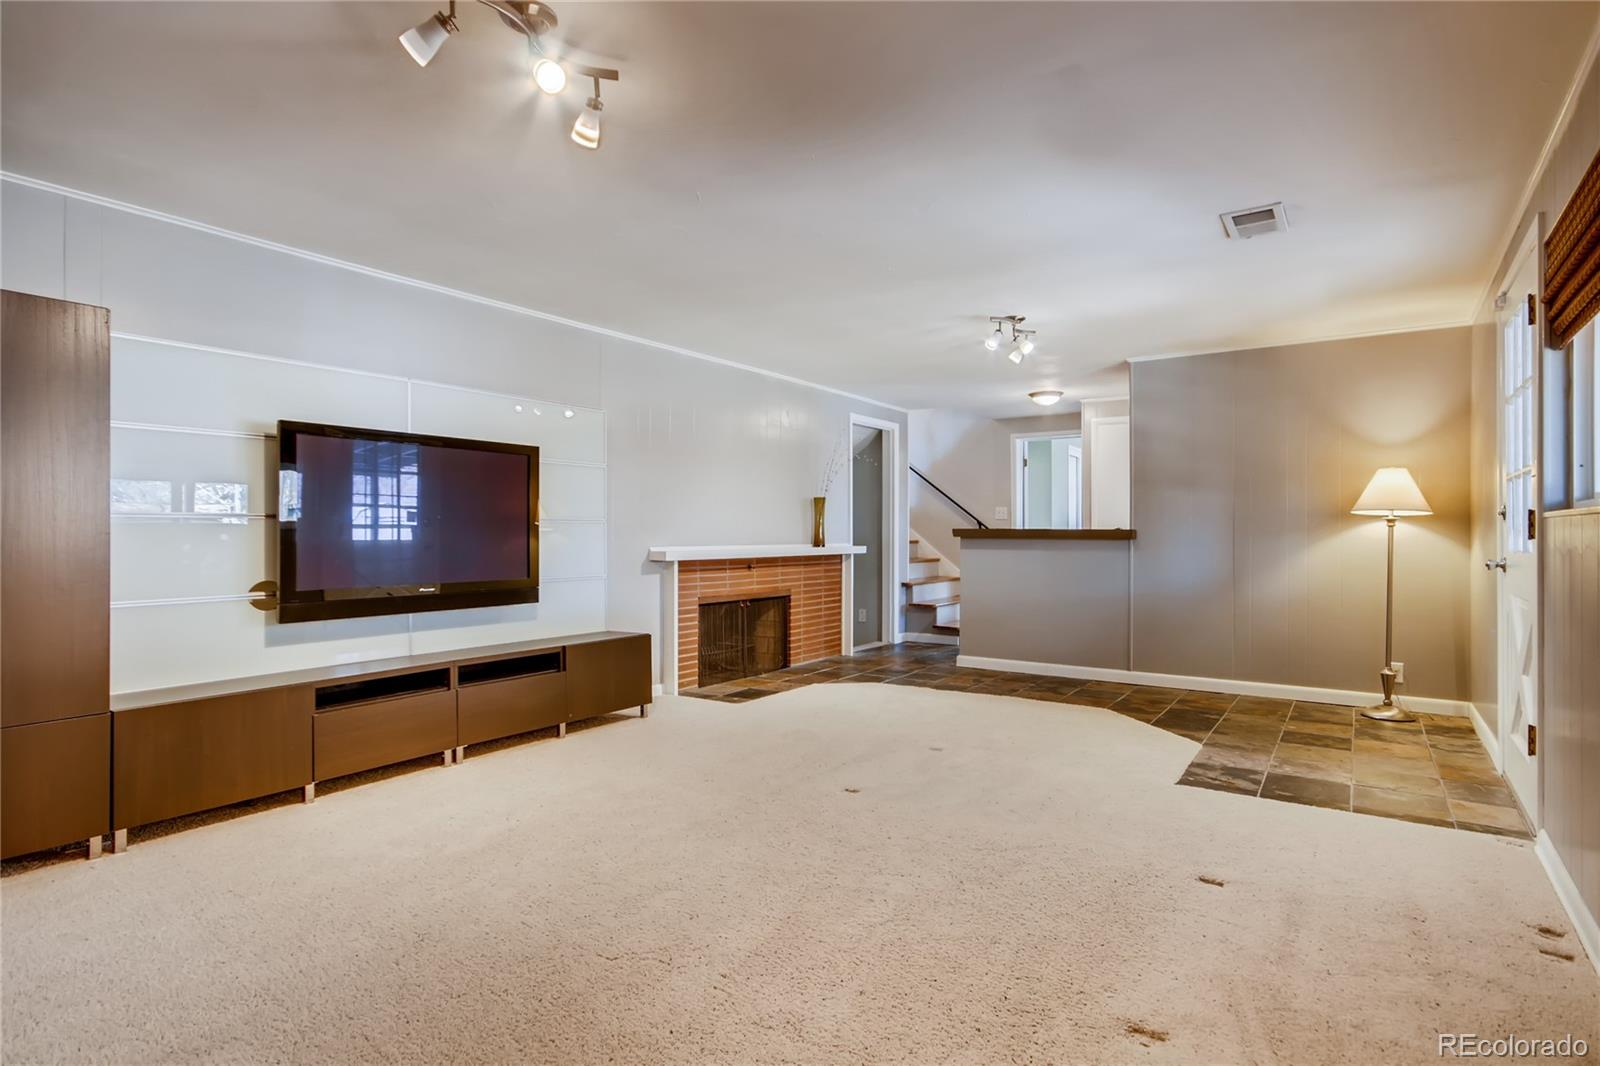 MLS# 9197299 - 15 - 10511 W 22nd Place, Lakewood, CO 80215